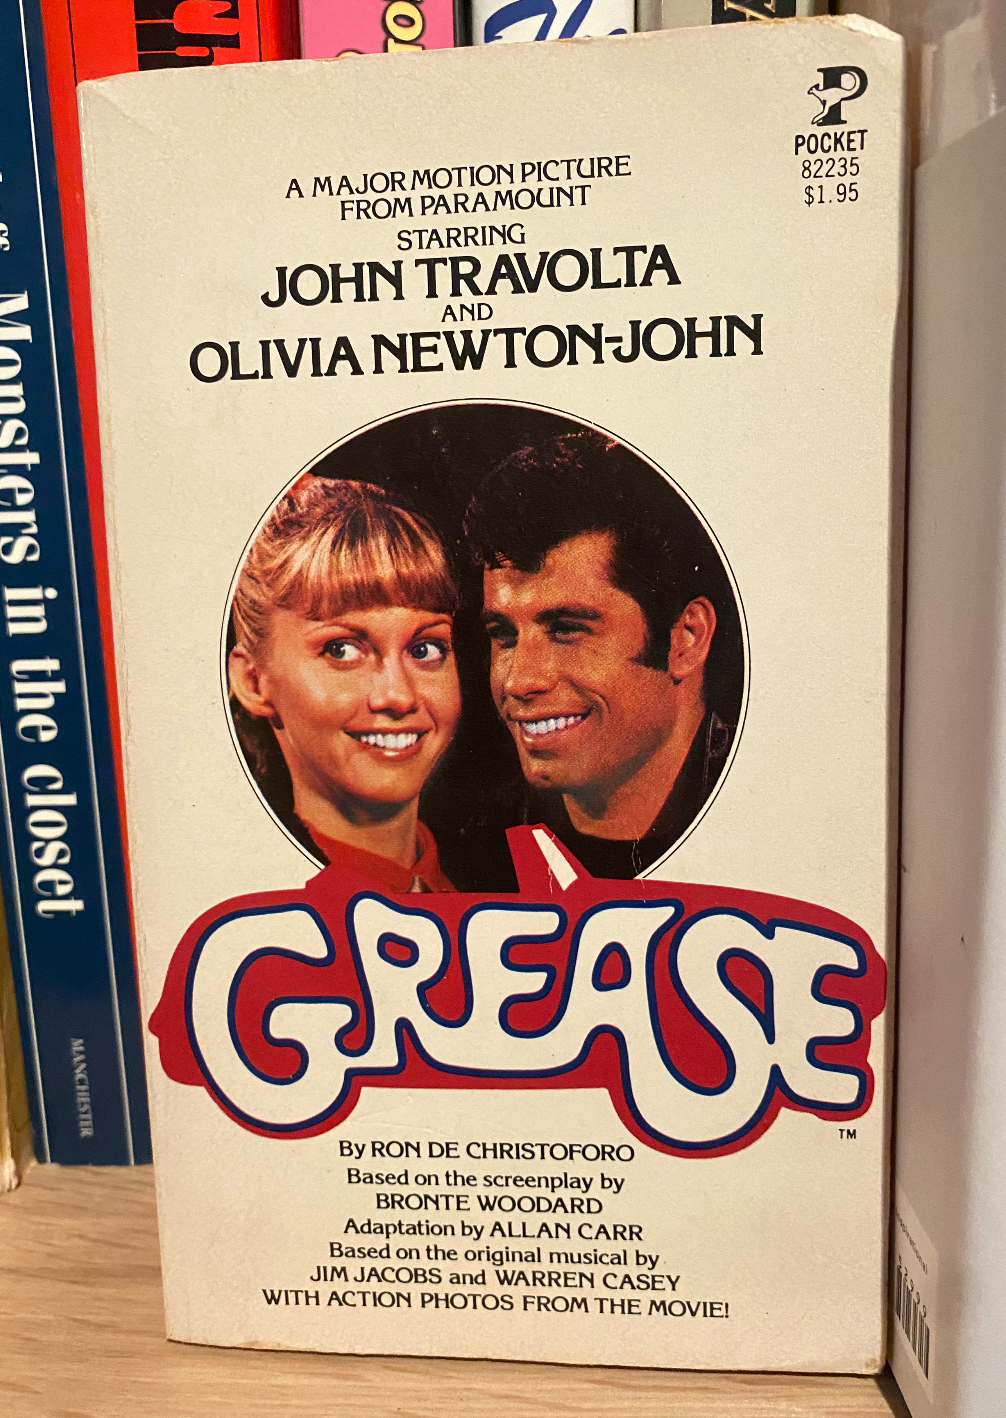 SOLD Grease